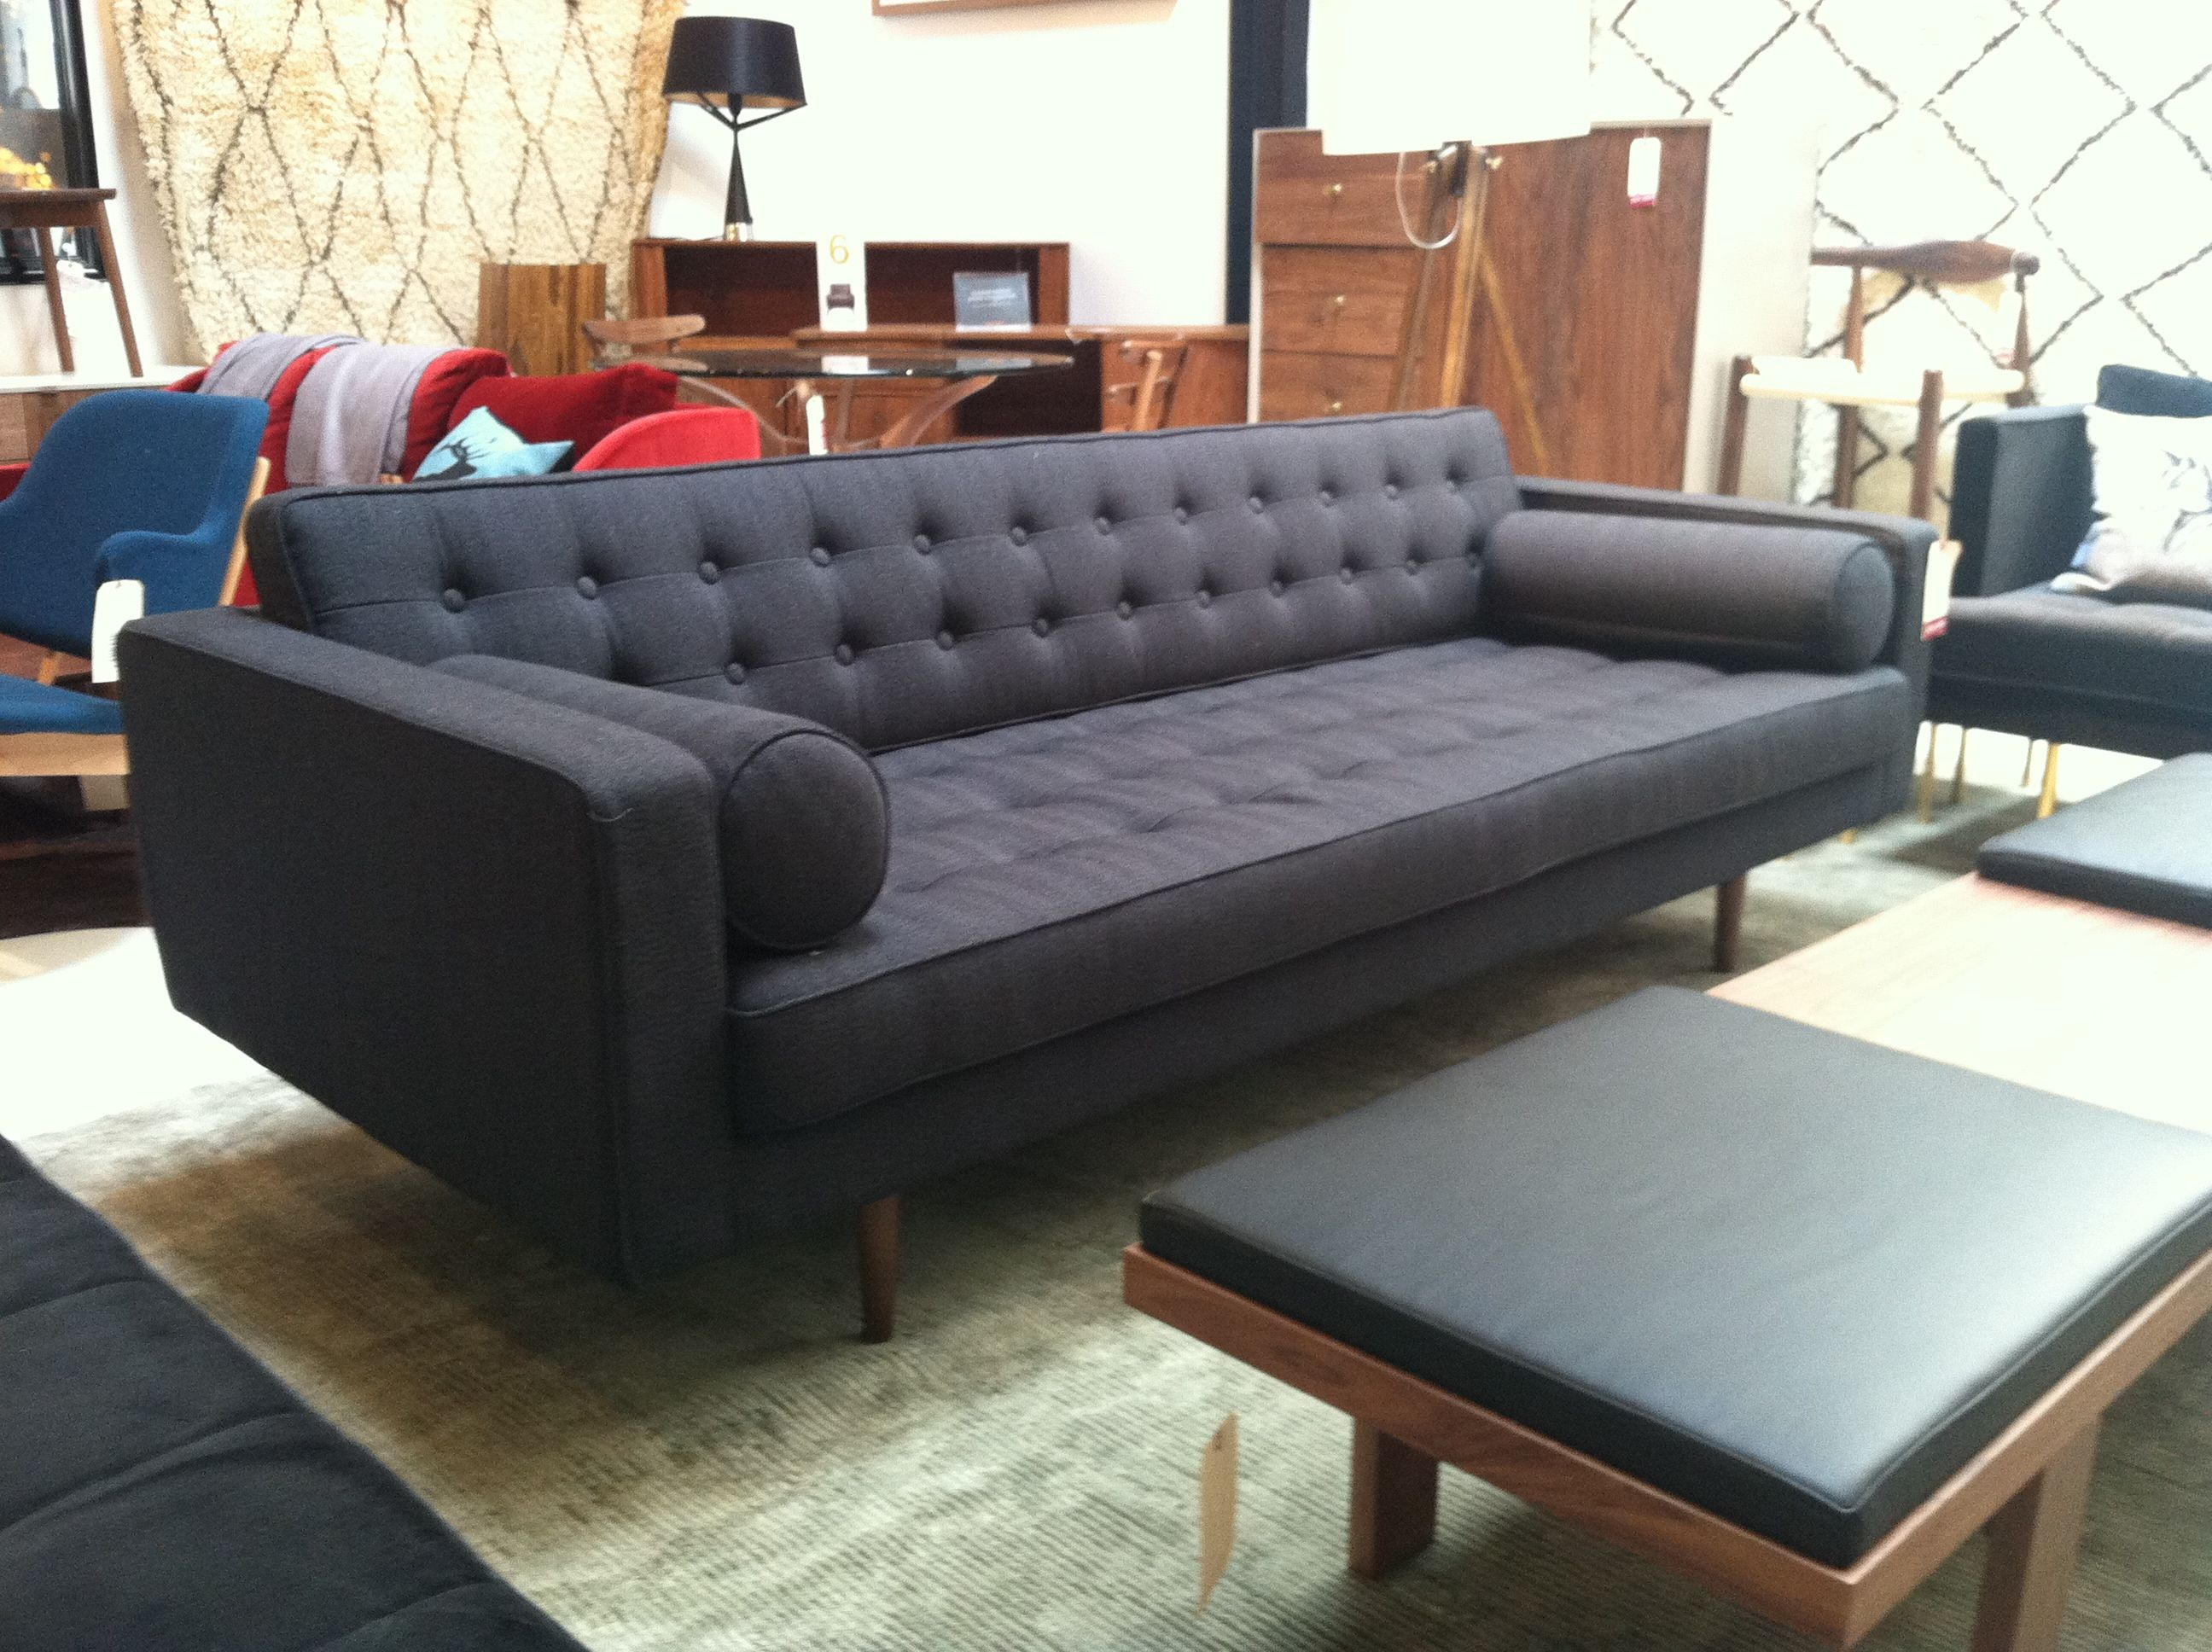 HD ButterCup Sale CapeTown Sofa = blue